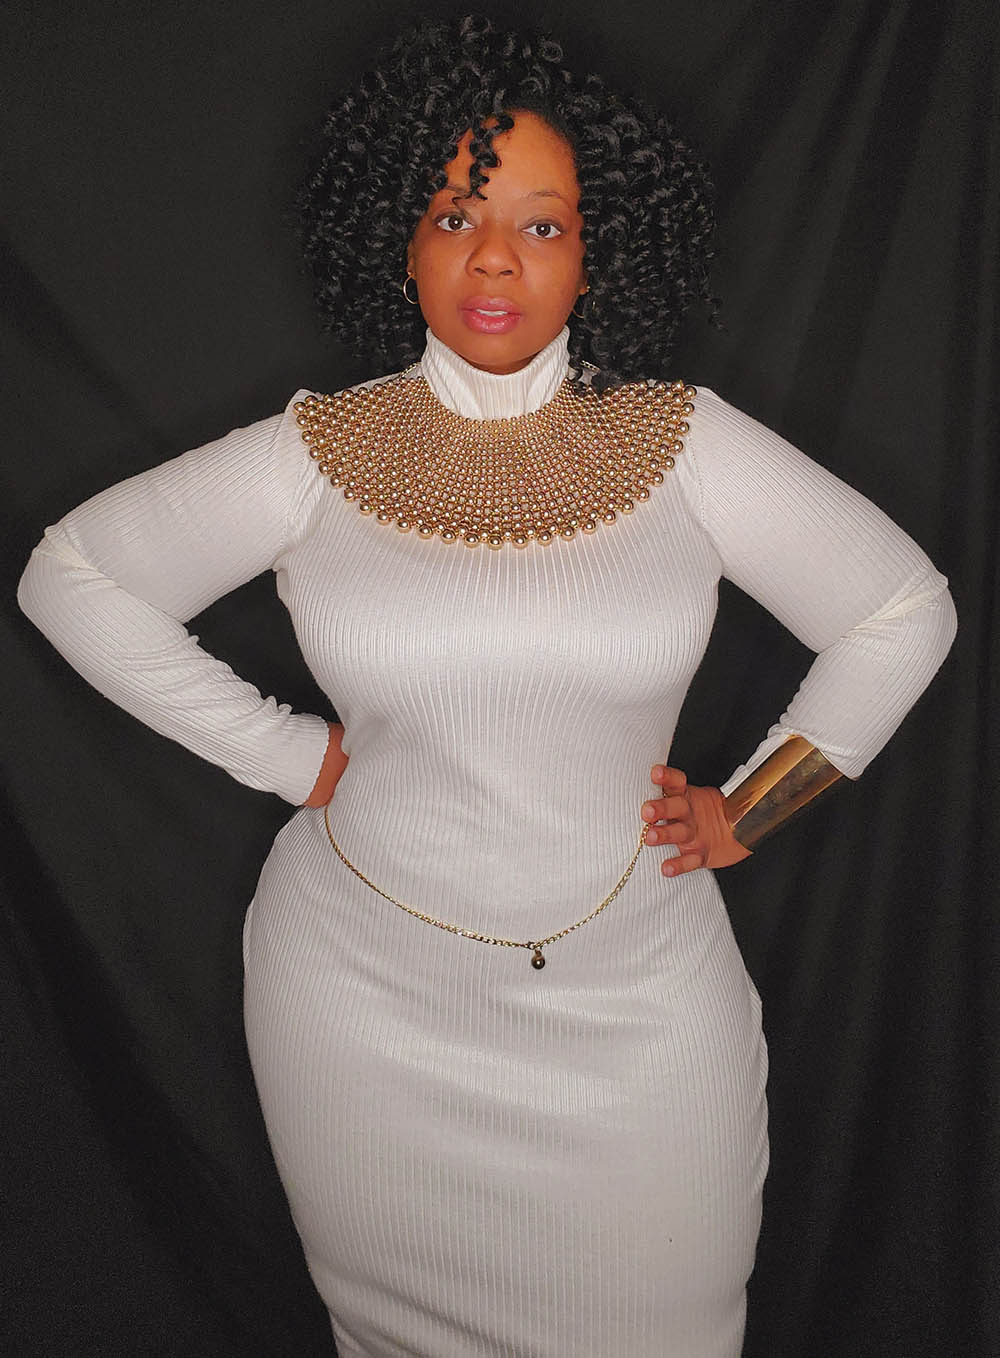 Prague's Classic Turtleneck Top and Dress Sizes XXS to 3X Adults PDF Pattern